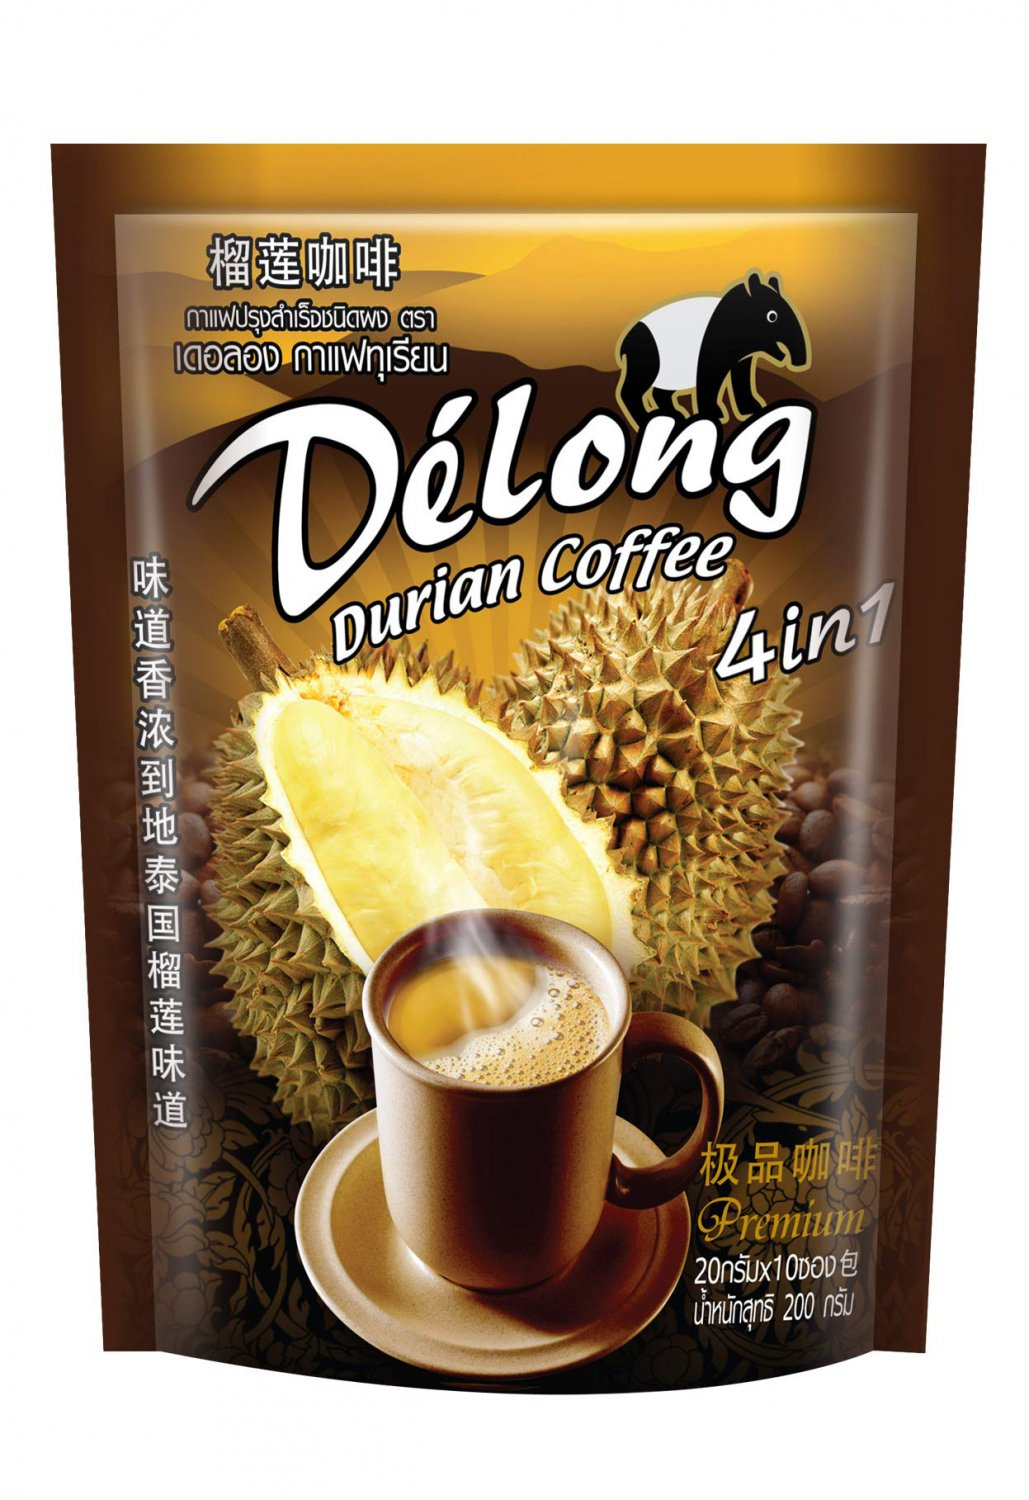 DeLong ( Delong ) 4 in 1 Premium Durian Coffee - Real Durian